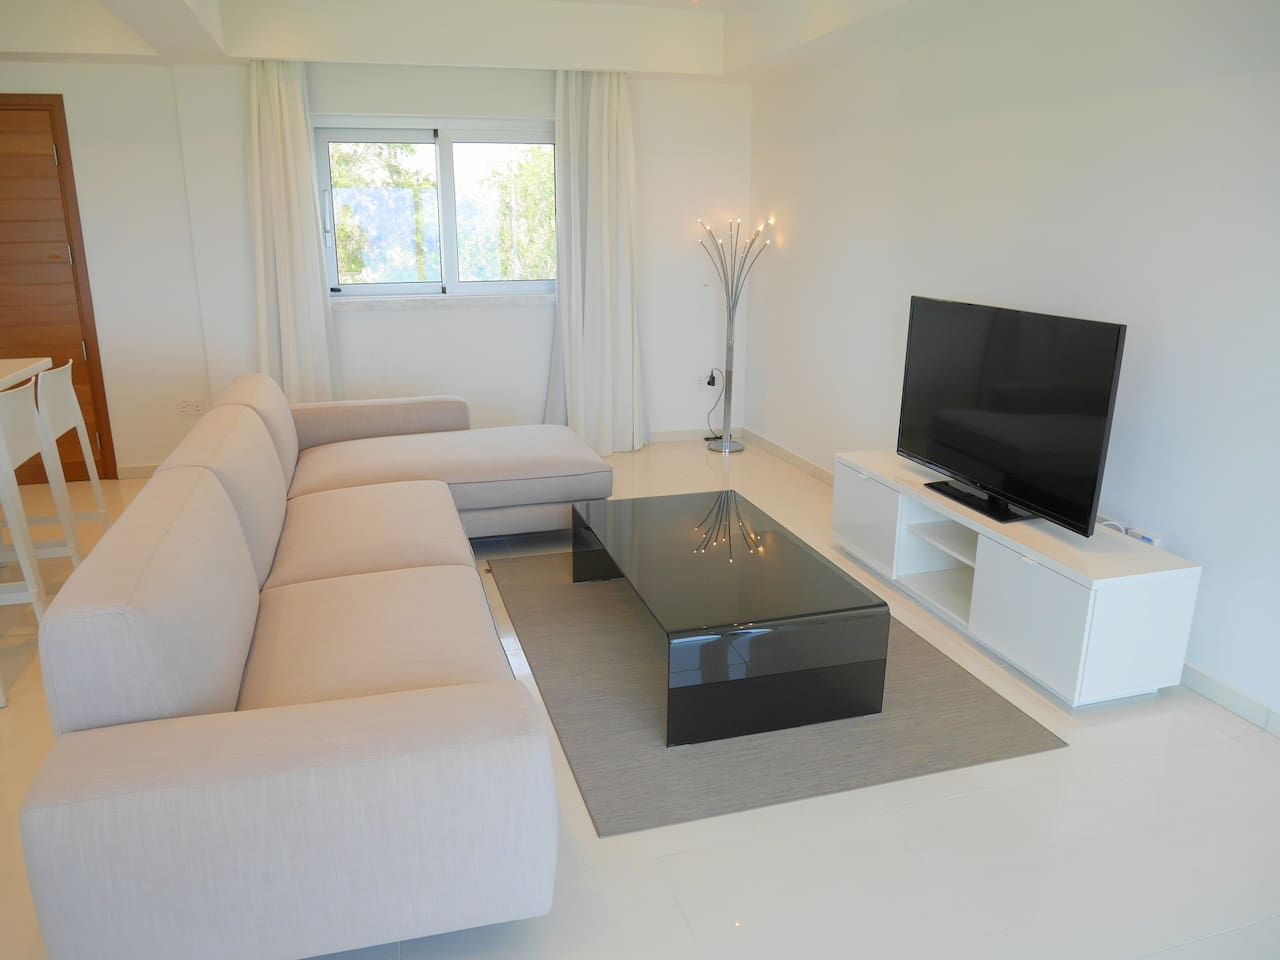 Apartment 2 Bed Luxury Apt with Large Communal Pool - B3-101 photo 26059200